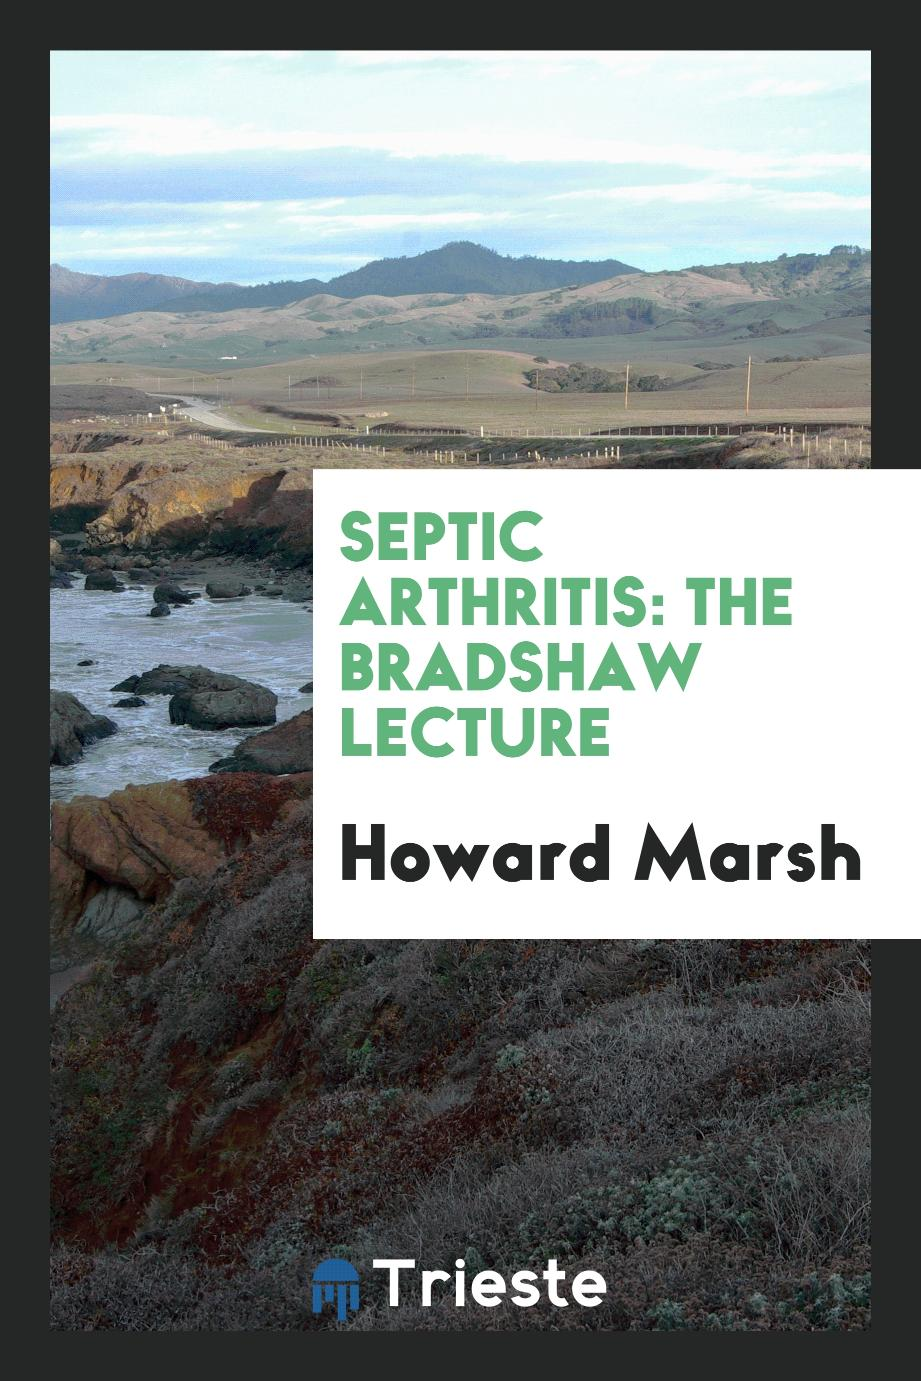 Septic arthritis: The Bradshaw Lecture